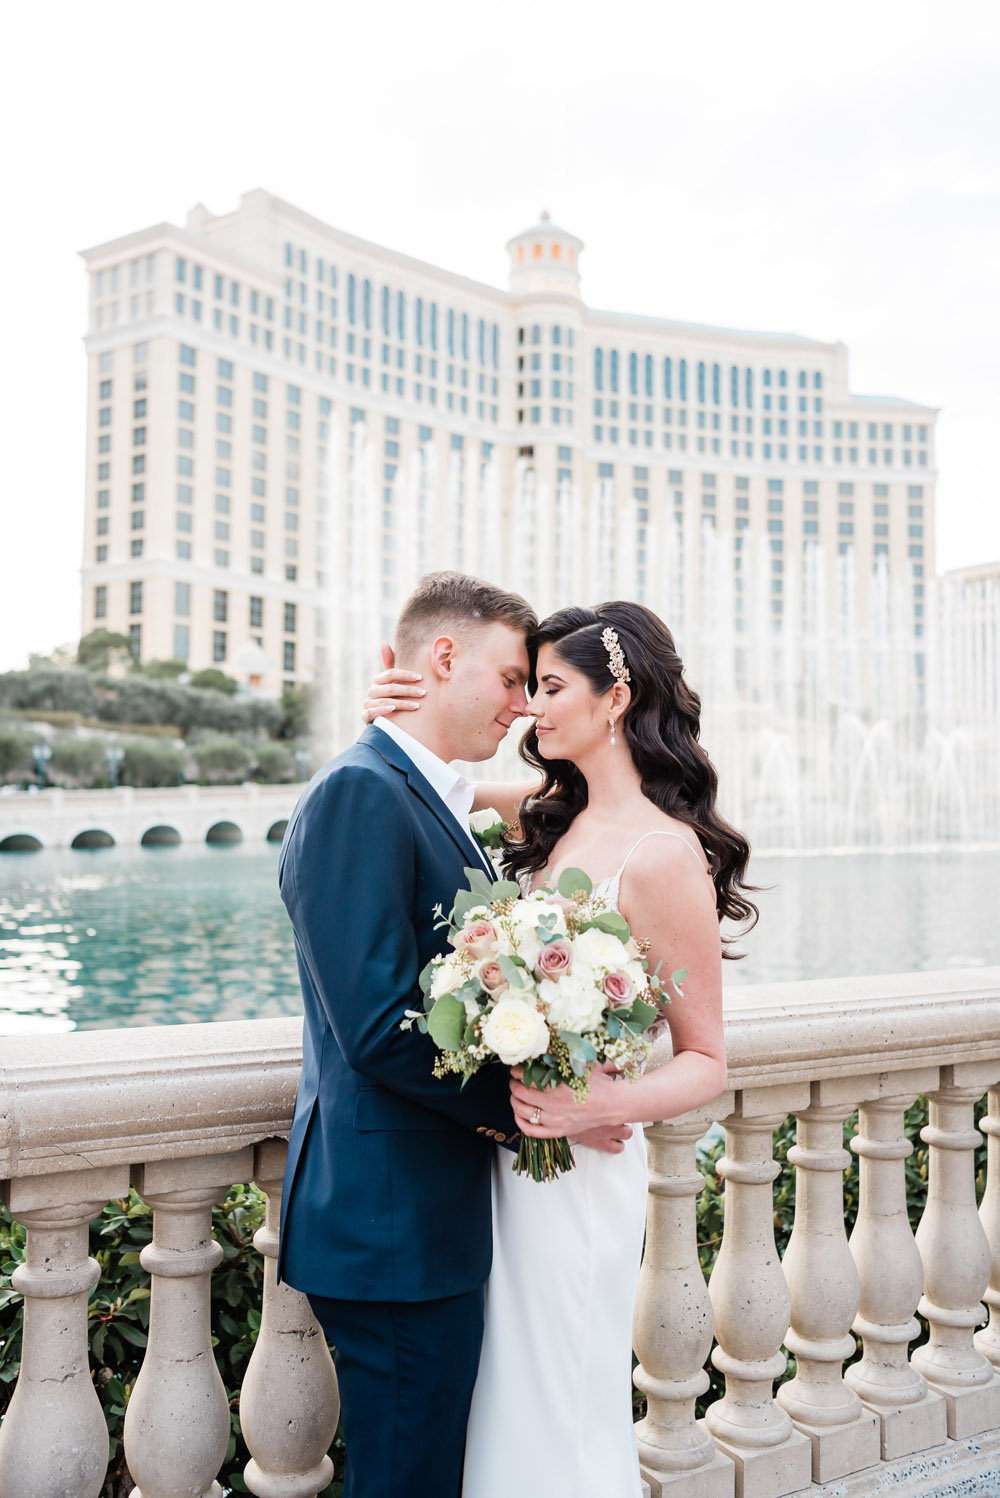 Bellagio Las Vegas Wedding | Kristen Marie Weddings + Portraits | Las Vegas Wedding Photographer